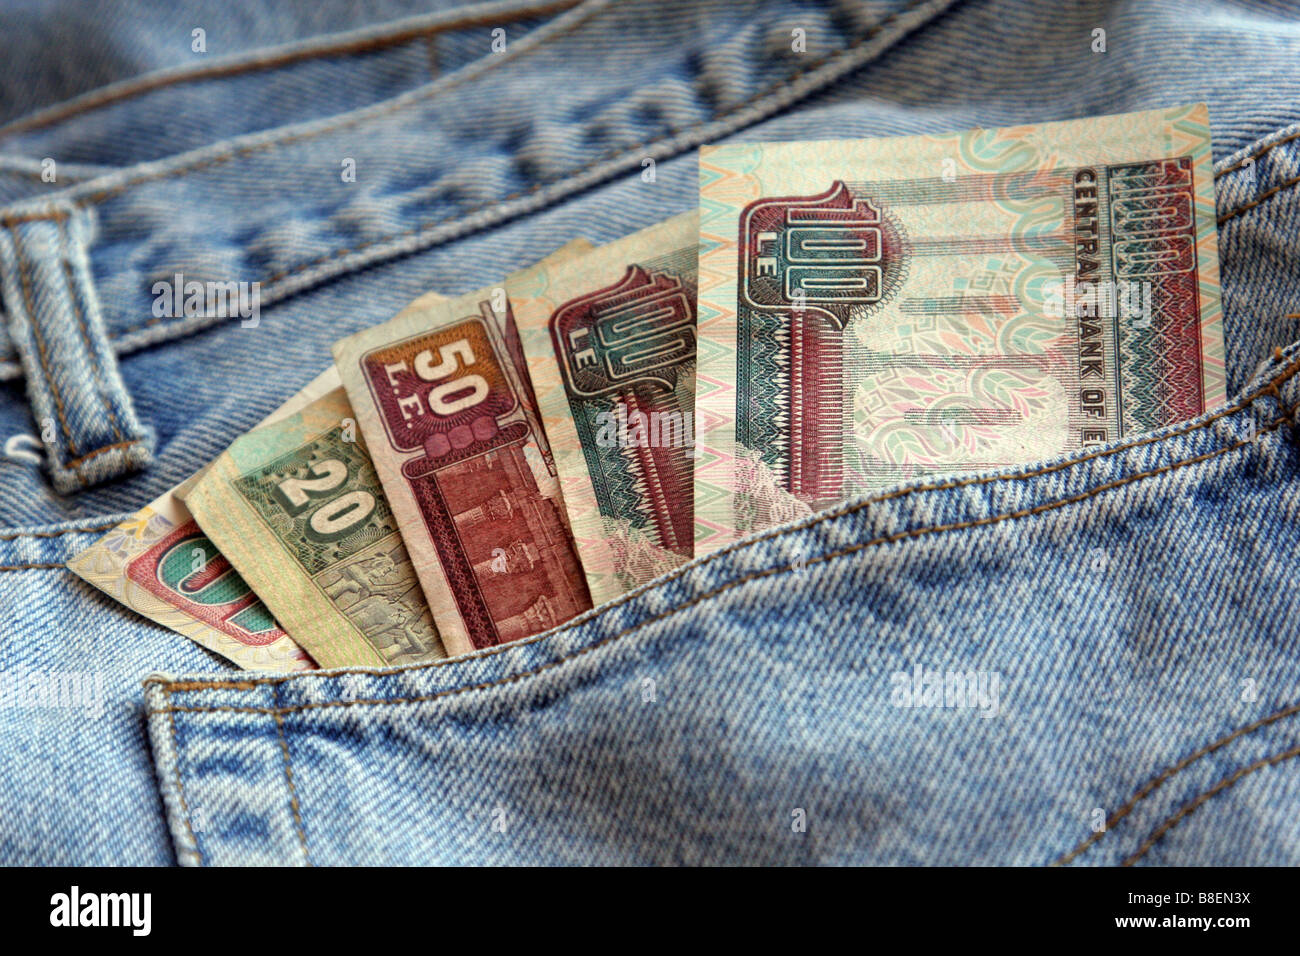 Egyptian Currencies in jeans pocket - Stock Image